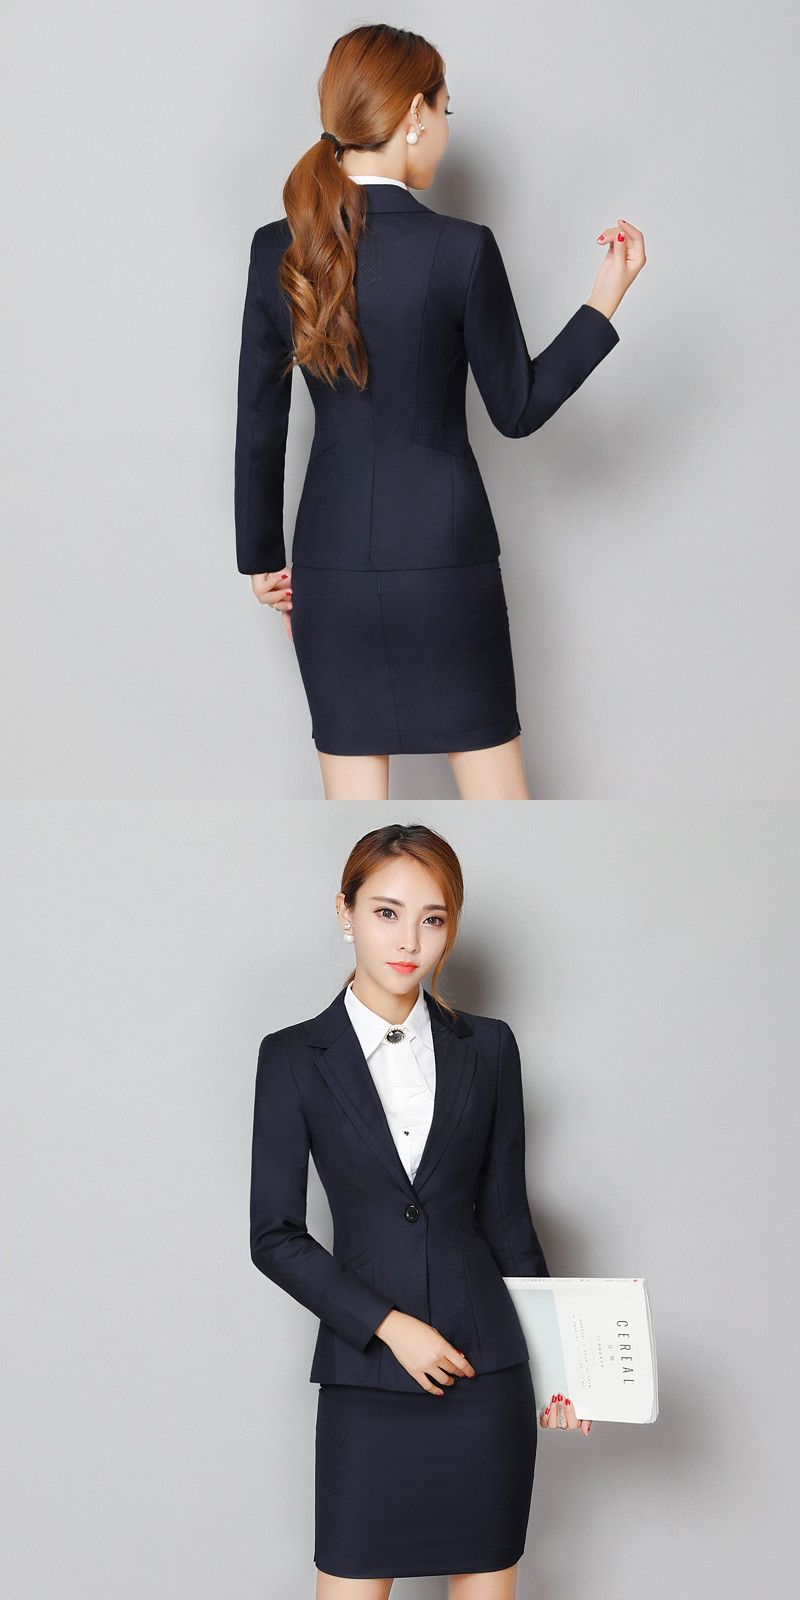 Aidenroy New Style 2018 Formal Blazer Women Skirt Suits Work Wear